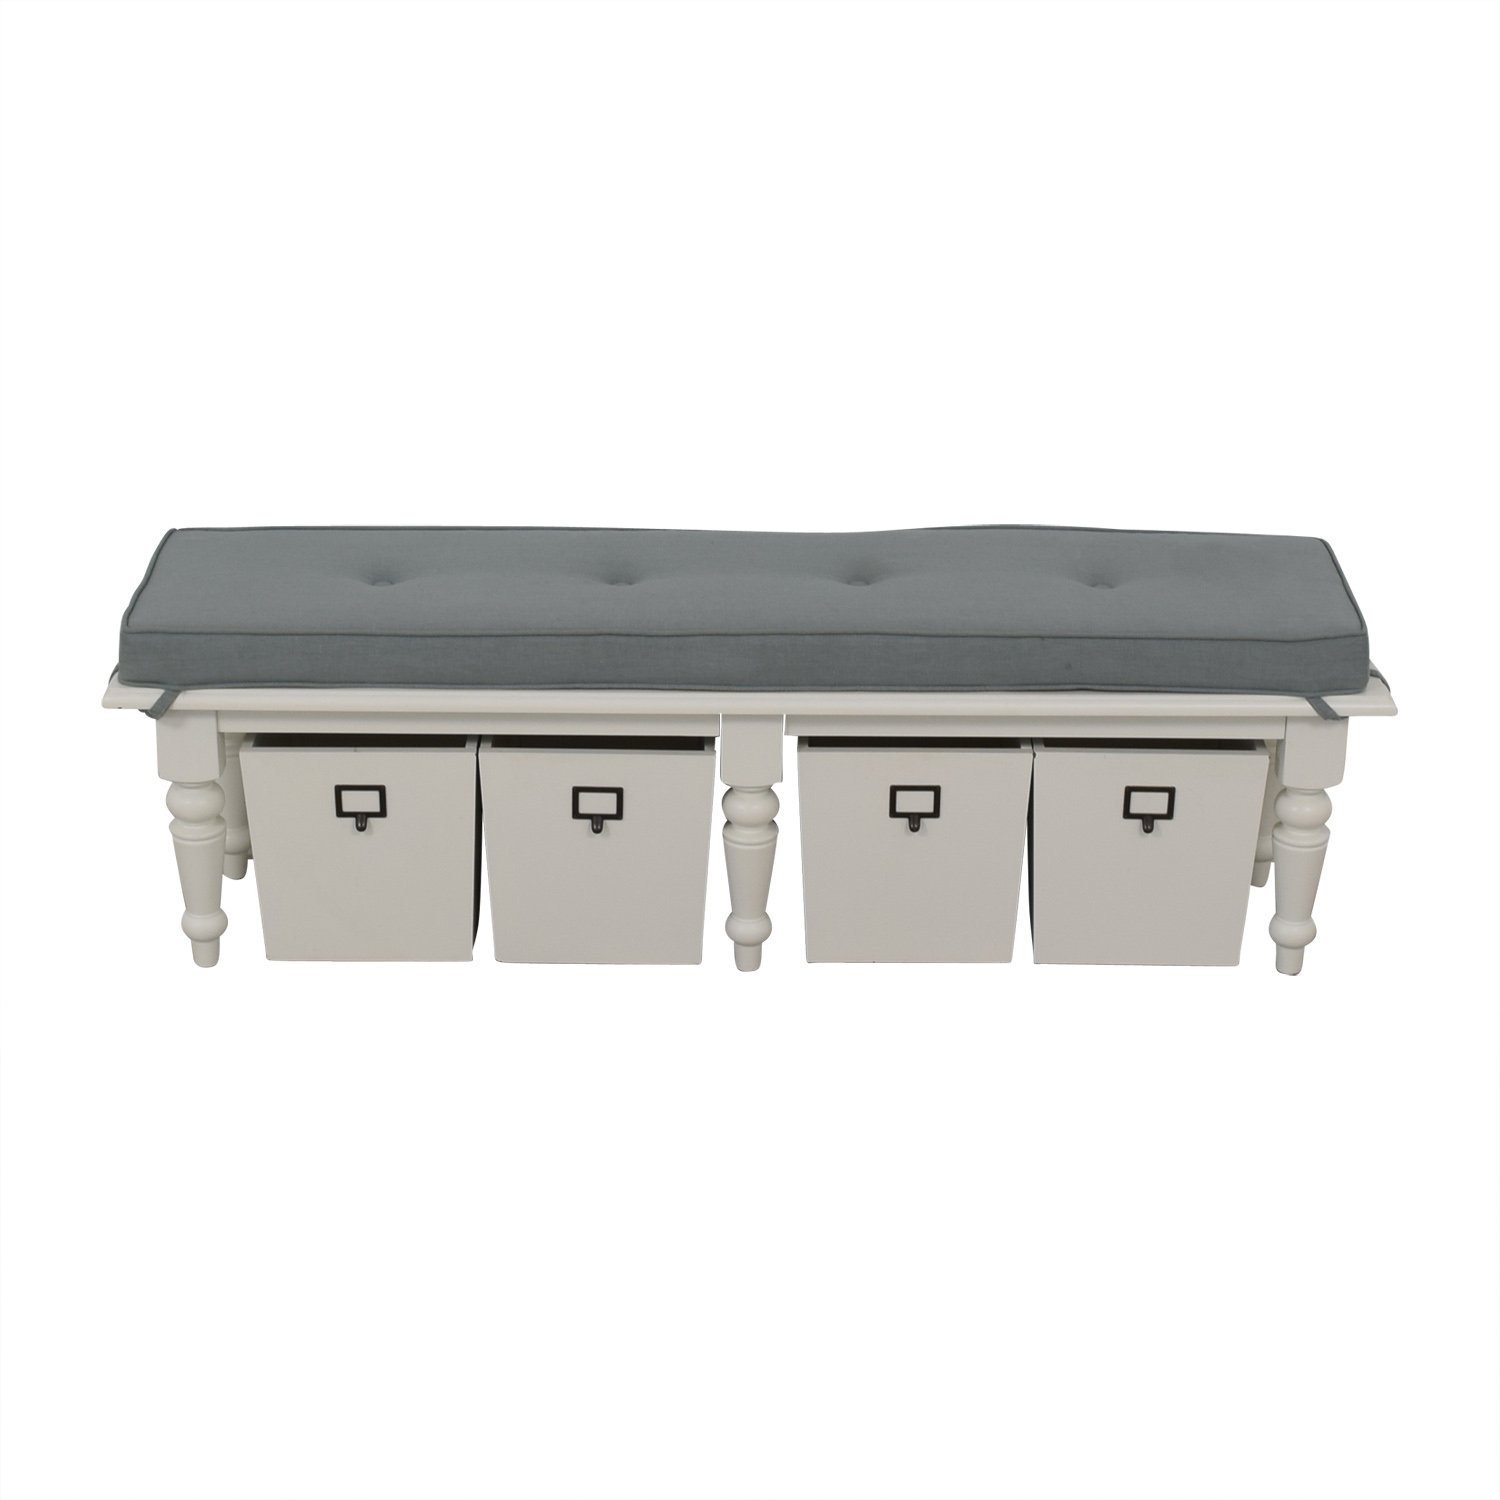 Home Goods Home Goods Grey Upholstered and White Bench with Four Storage Boxes nyc